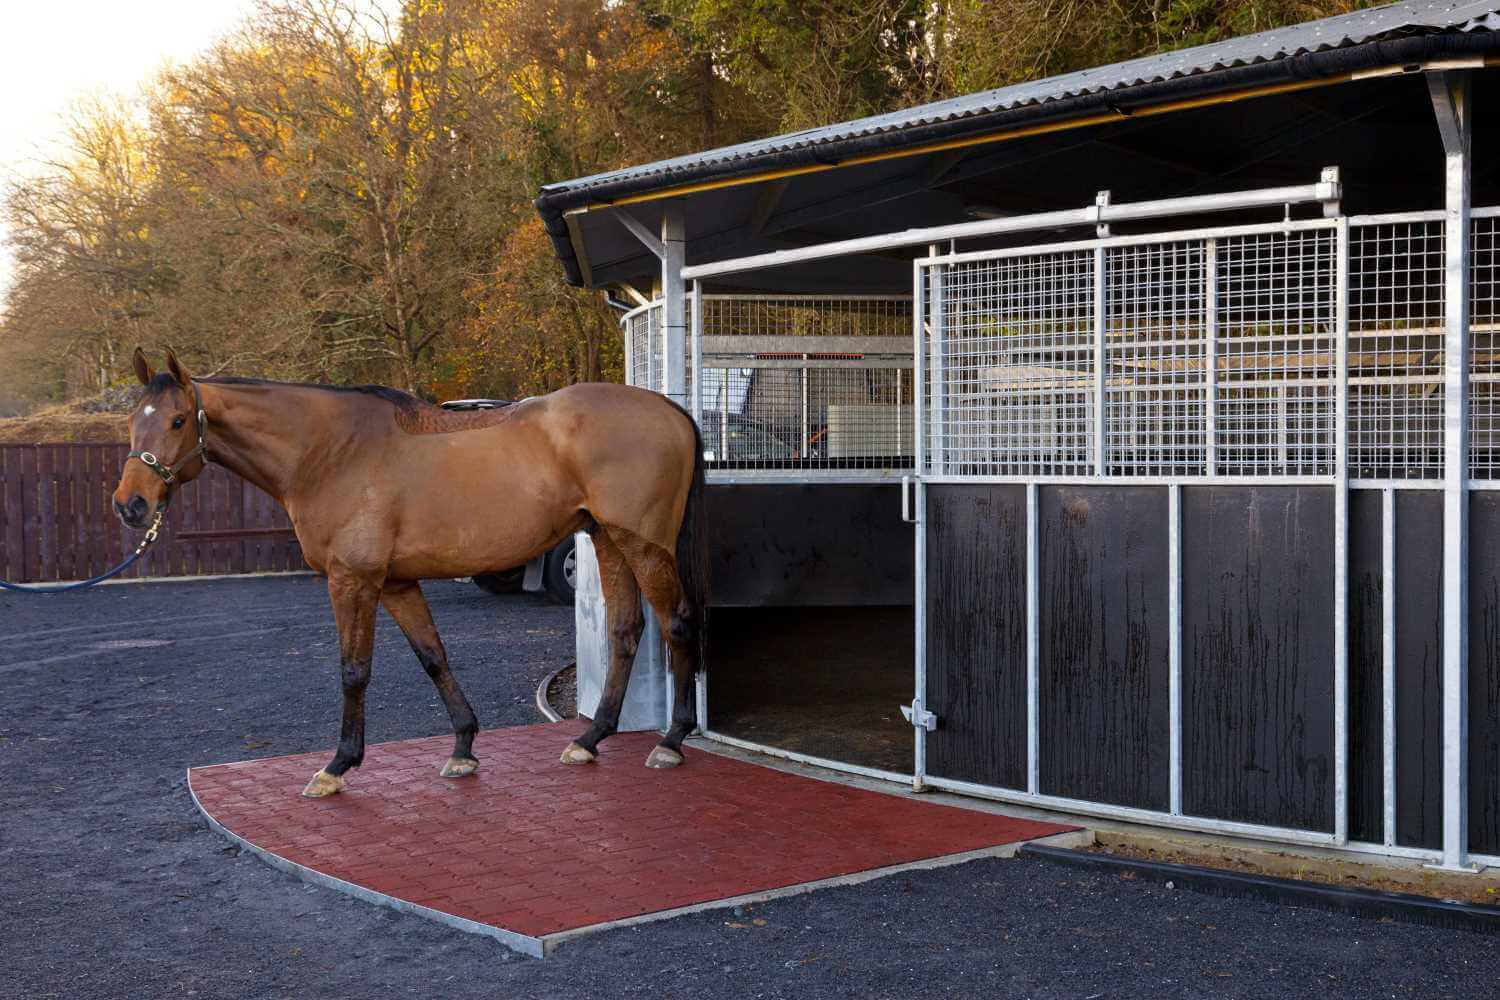 EASYFIX EQUINE WALKER TILES